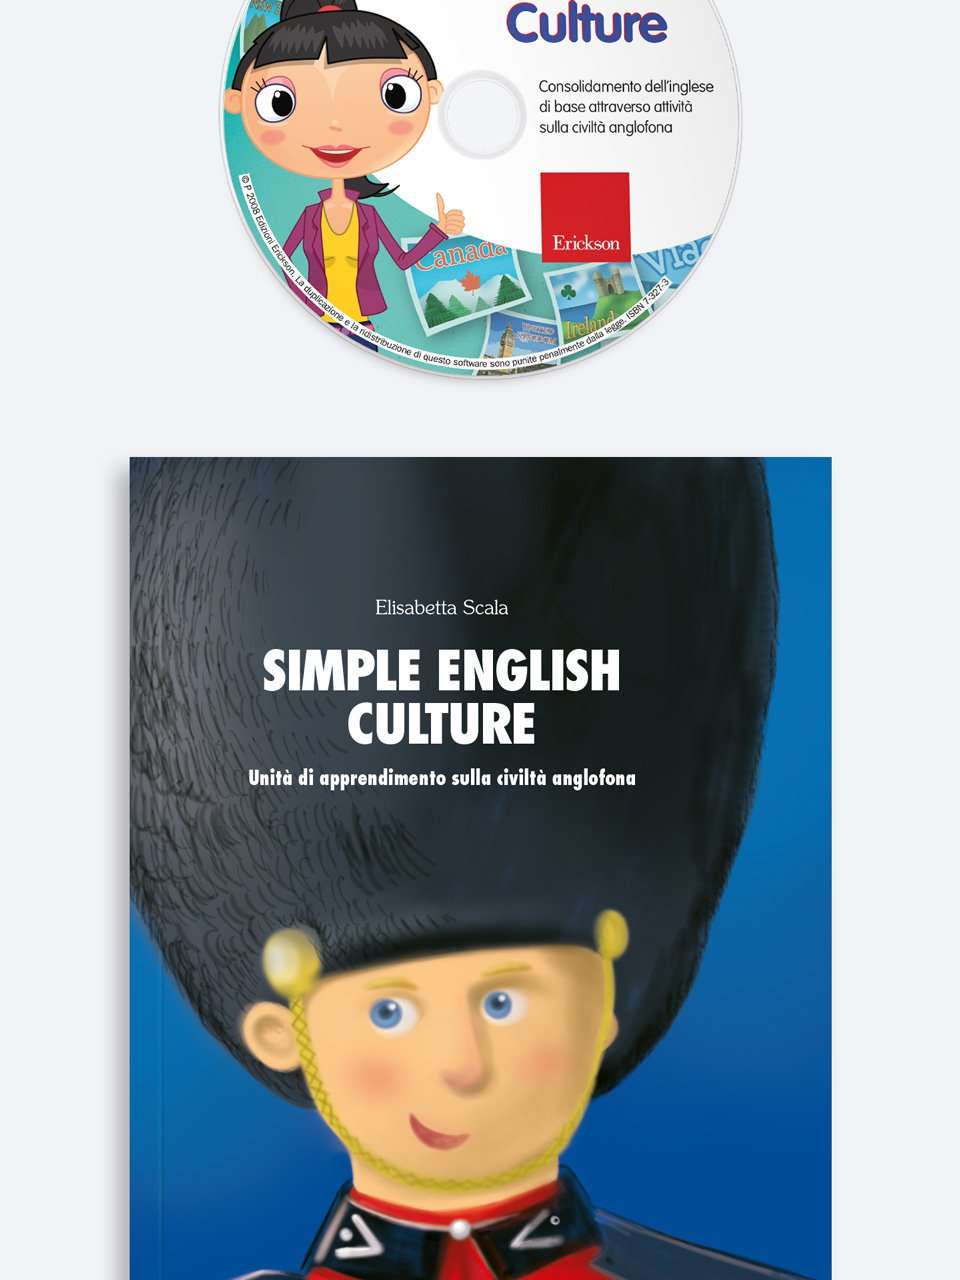 Simple English Culture - Français facile - Libri - App e software - Erickson 2